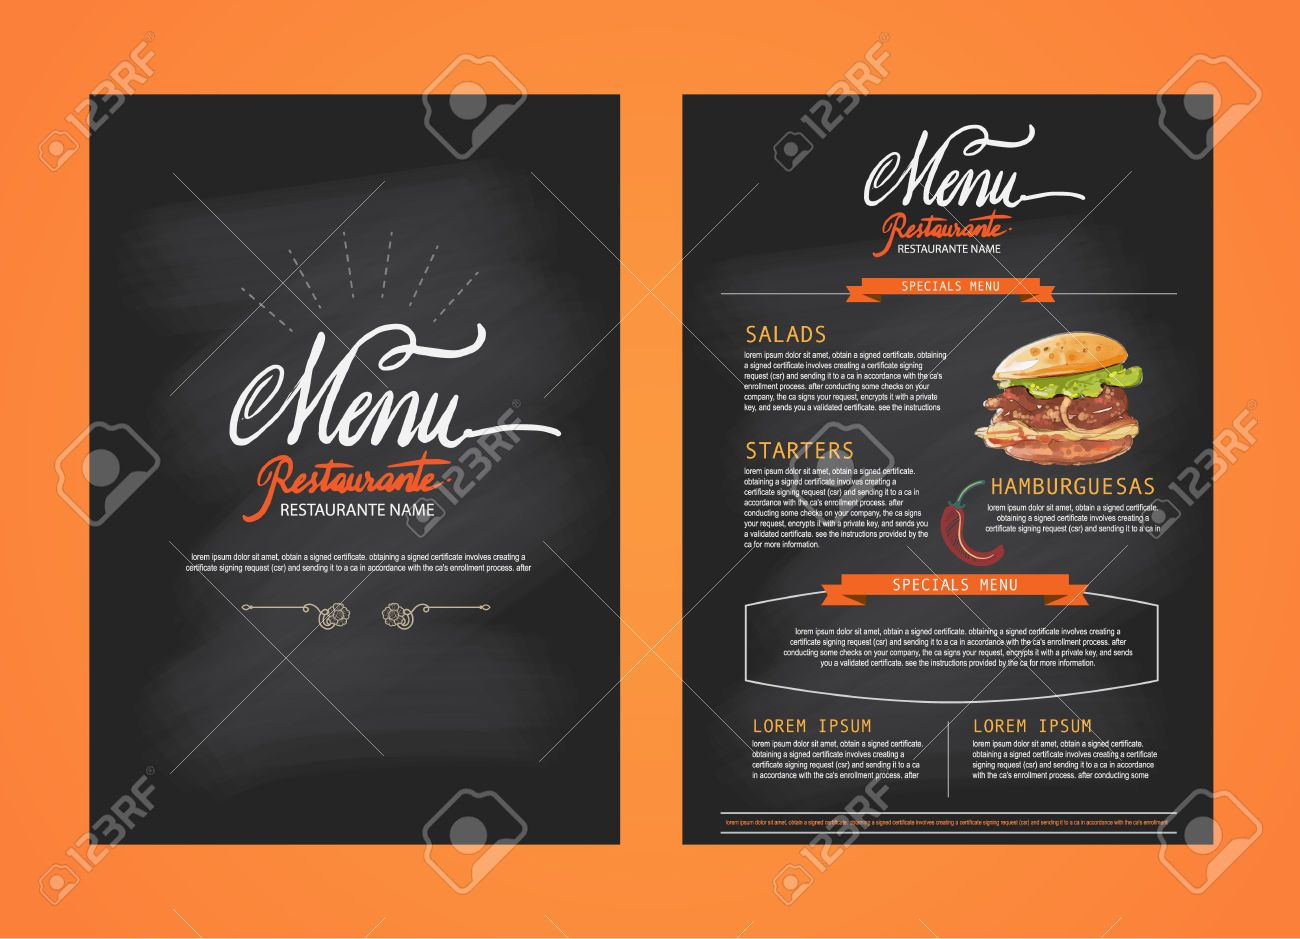 Stock Photo Modèle De Menu De Restaurant Modèles De Menu